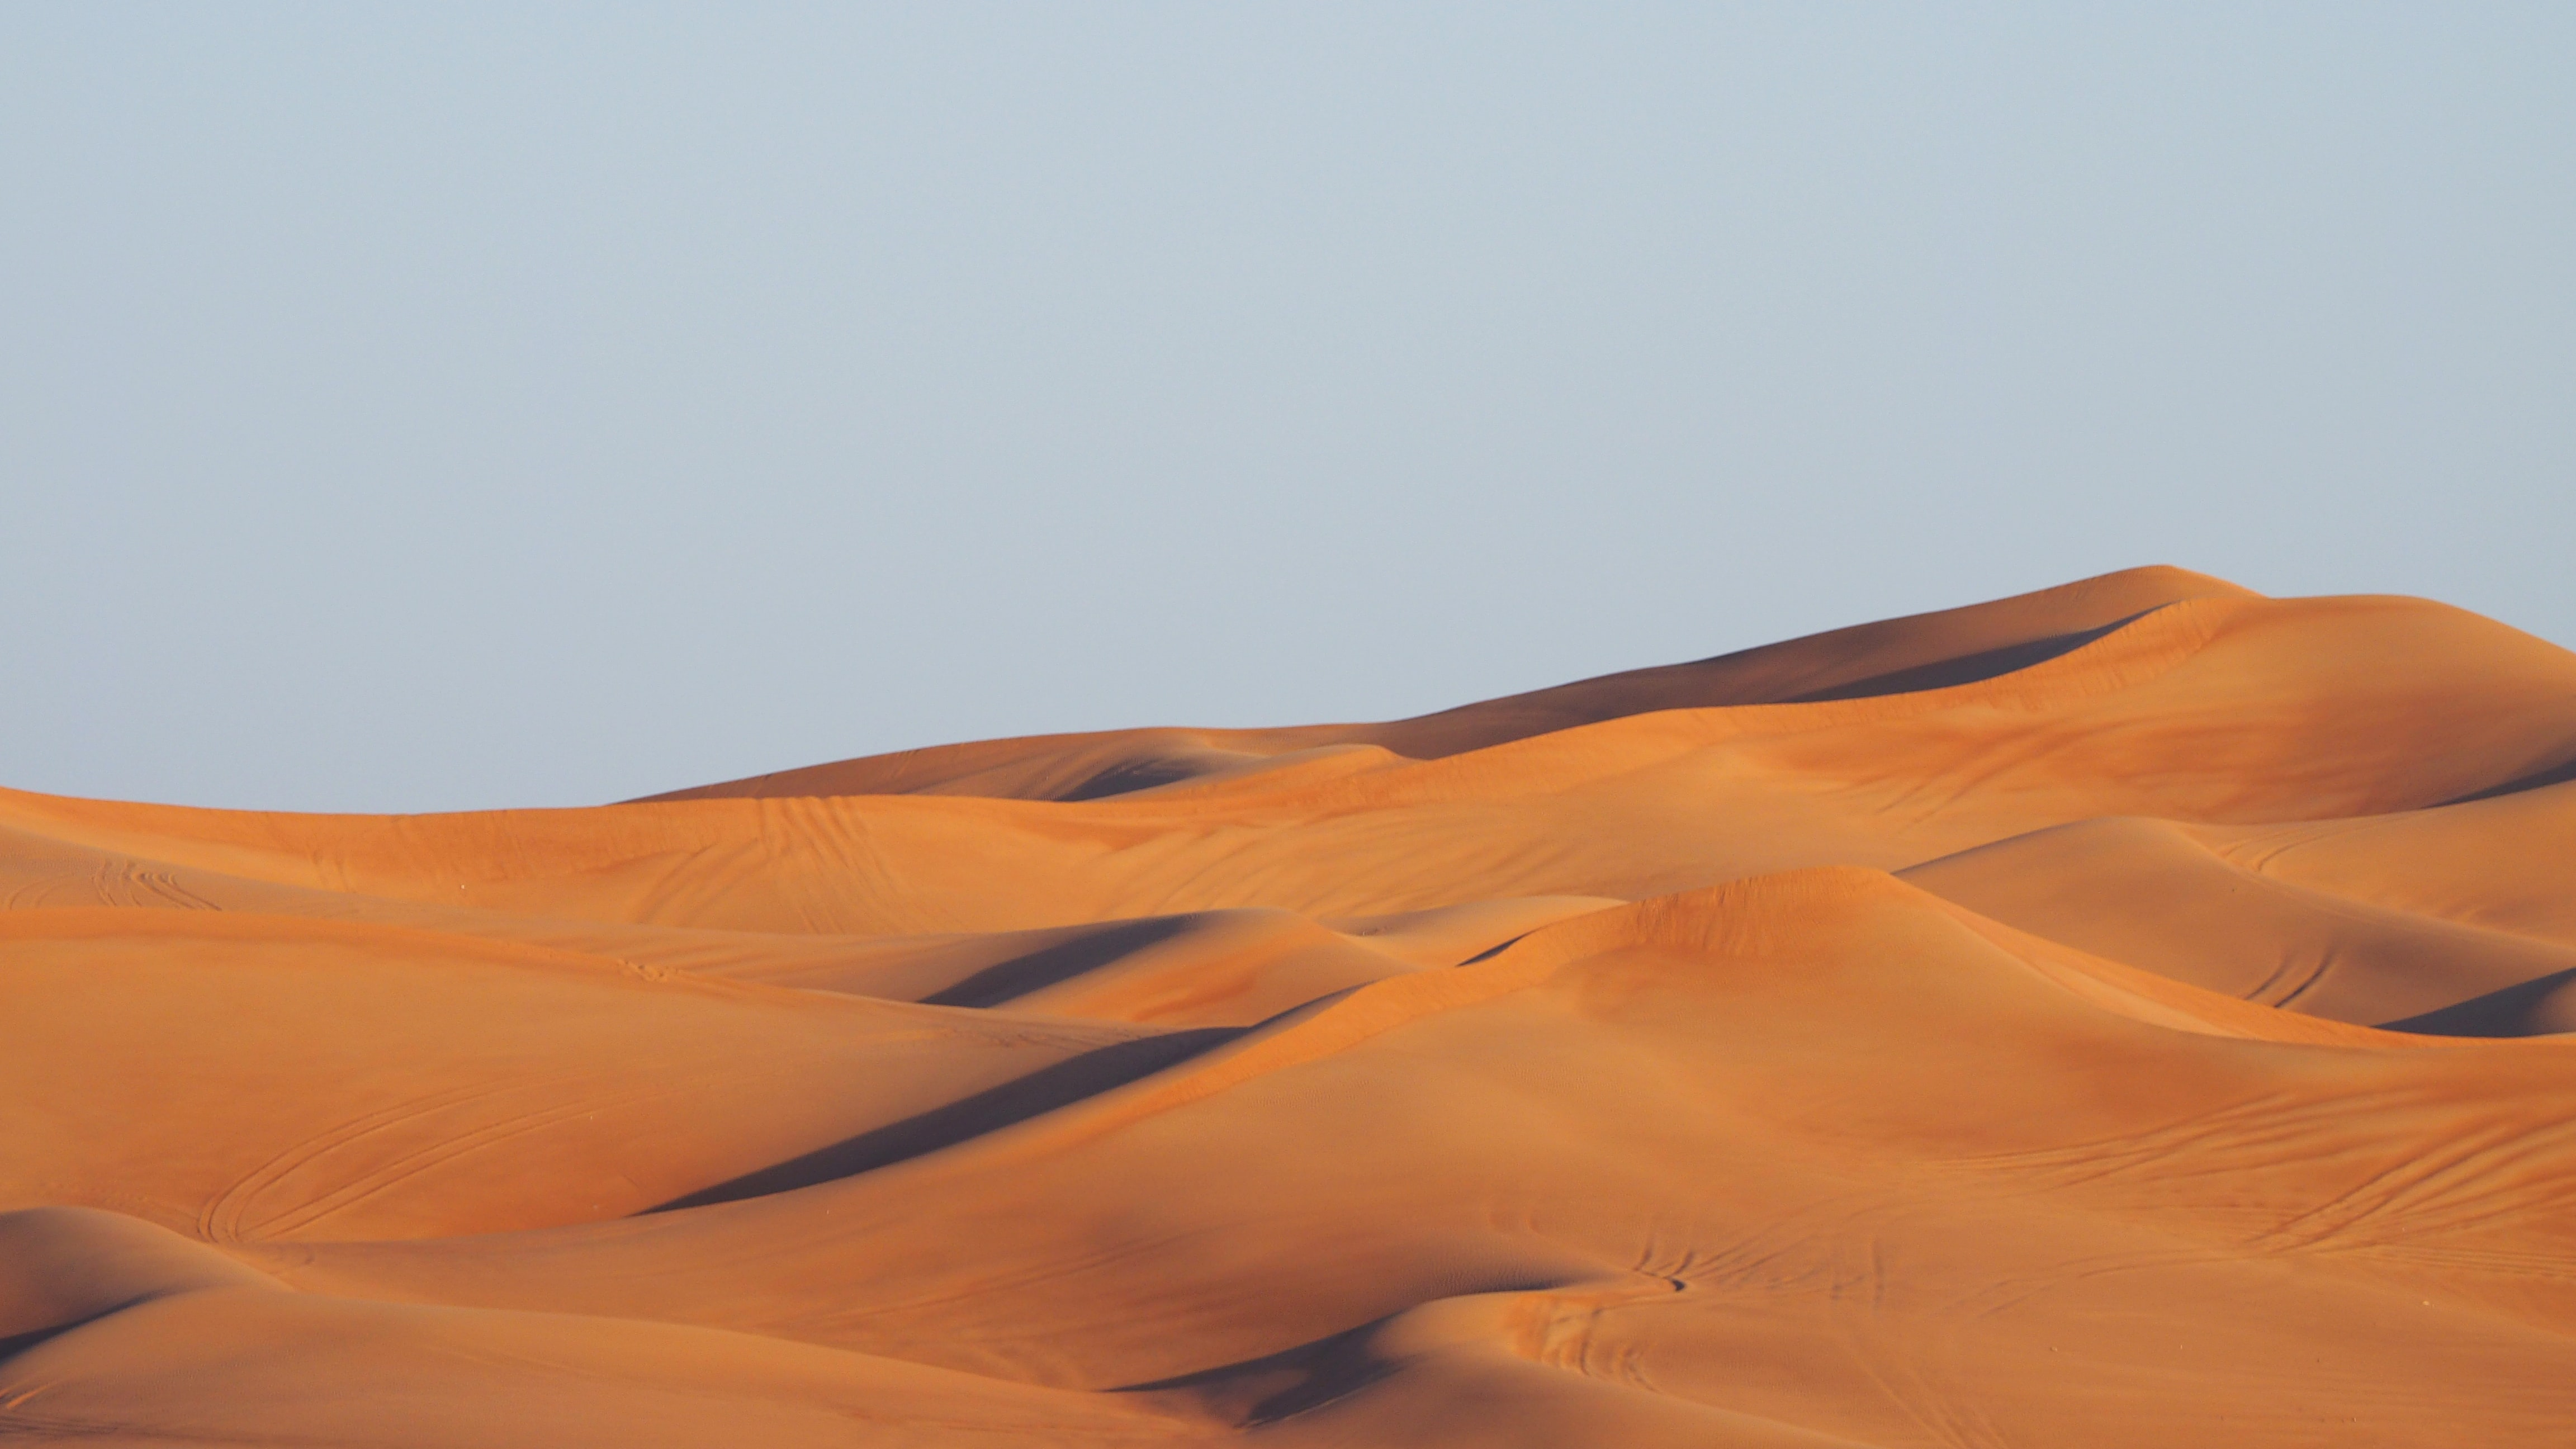 Rolling sand dunes in the Sahara